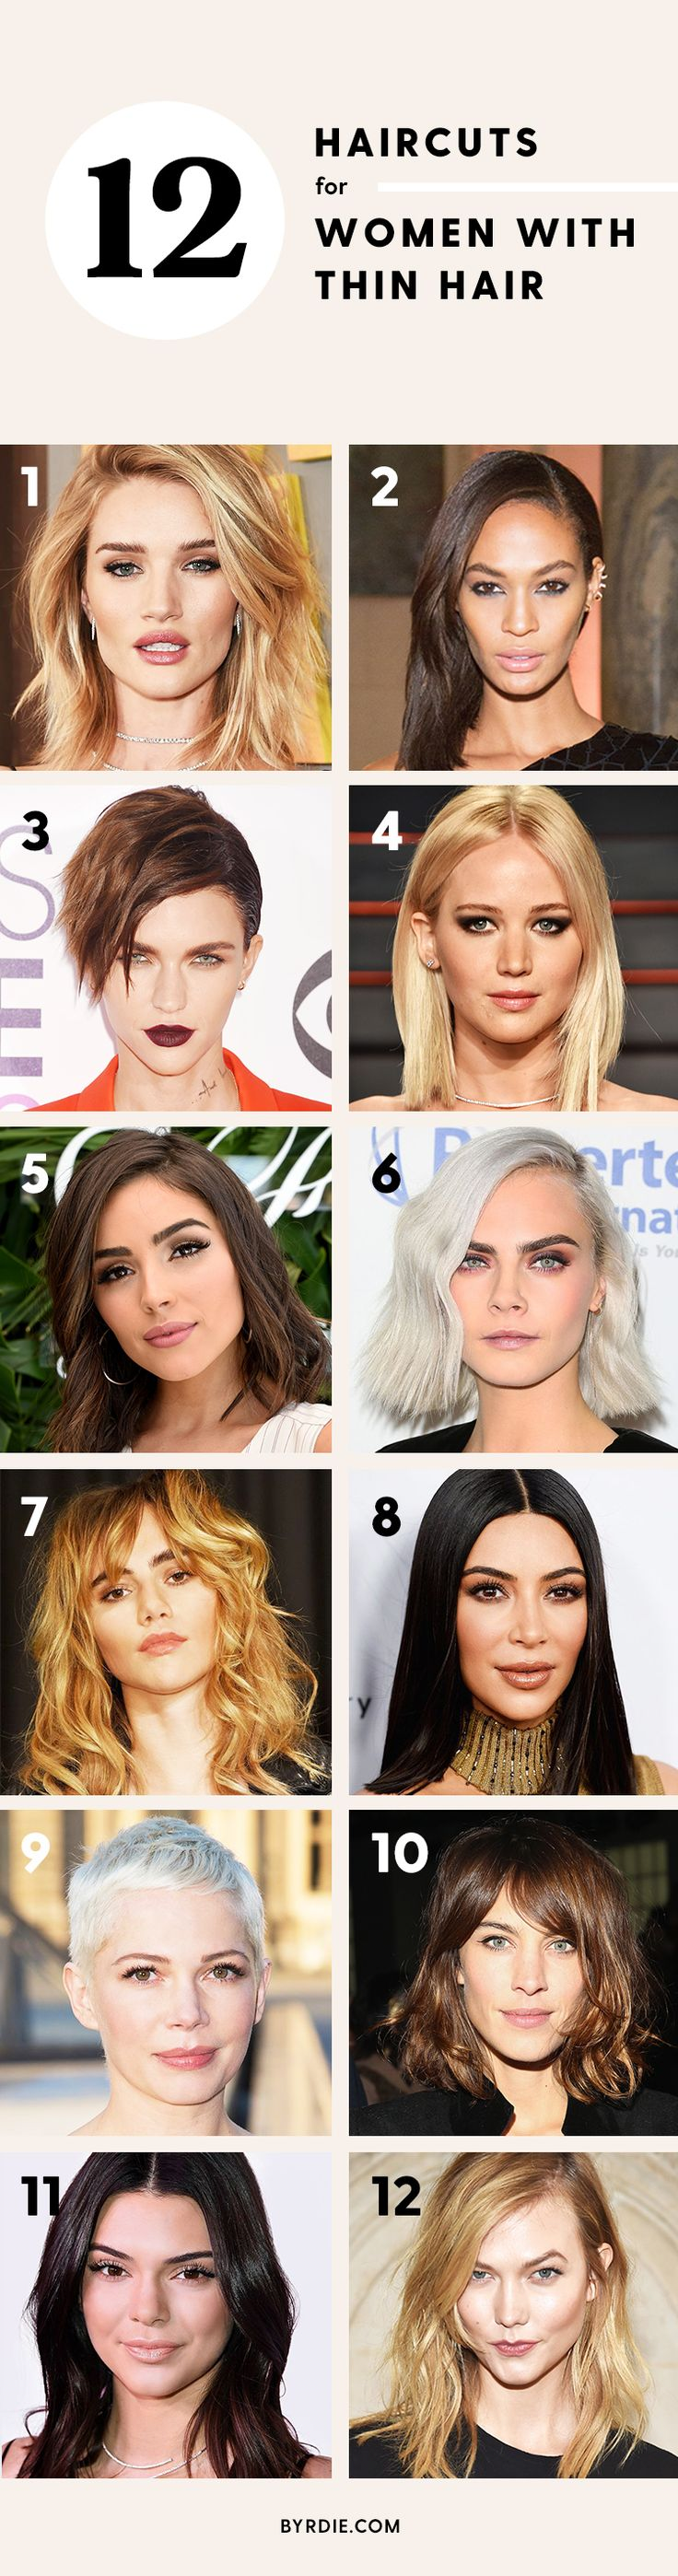 Best hairstyles for the best haircuts for thin hair